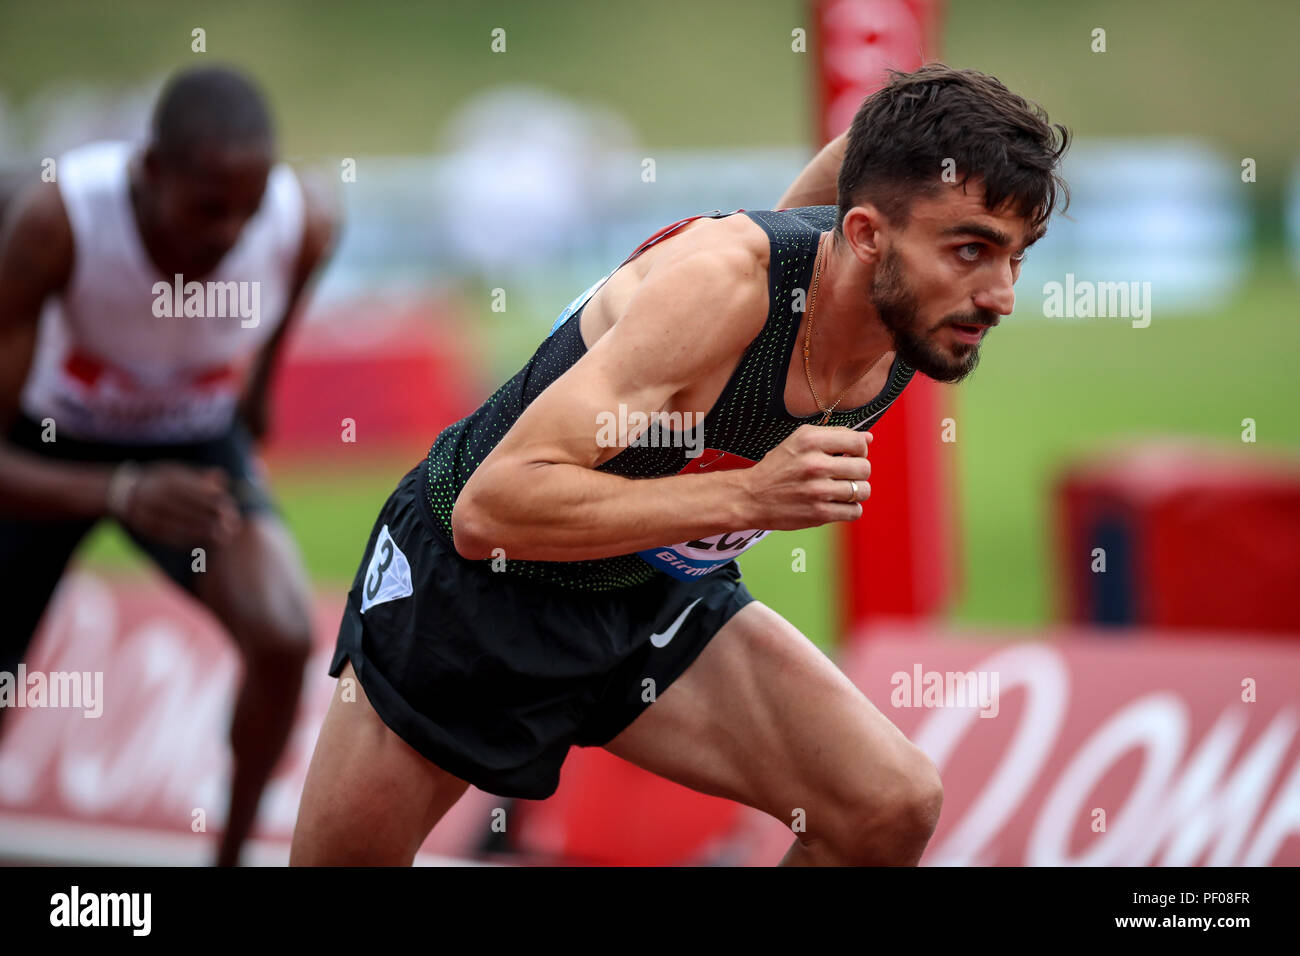 Alexander Stadium, Birmingham, UK. 18th Aug, 2018. Diamond League Muller Grand Prix; Adam Kszczot (POL) sets off as he compete in the Men's 800m Credit: Action Plus Sports/Alamy Live News - Stock Image